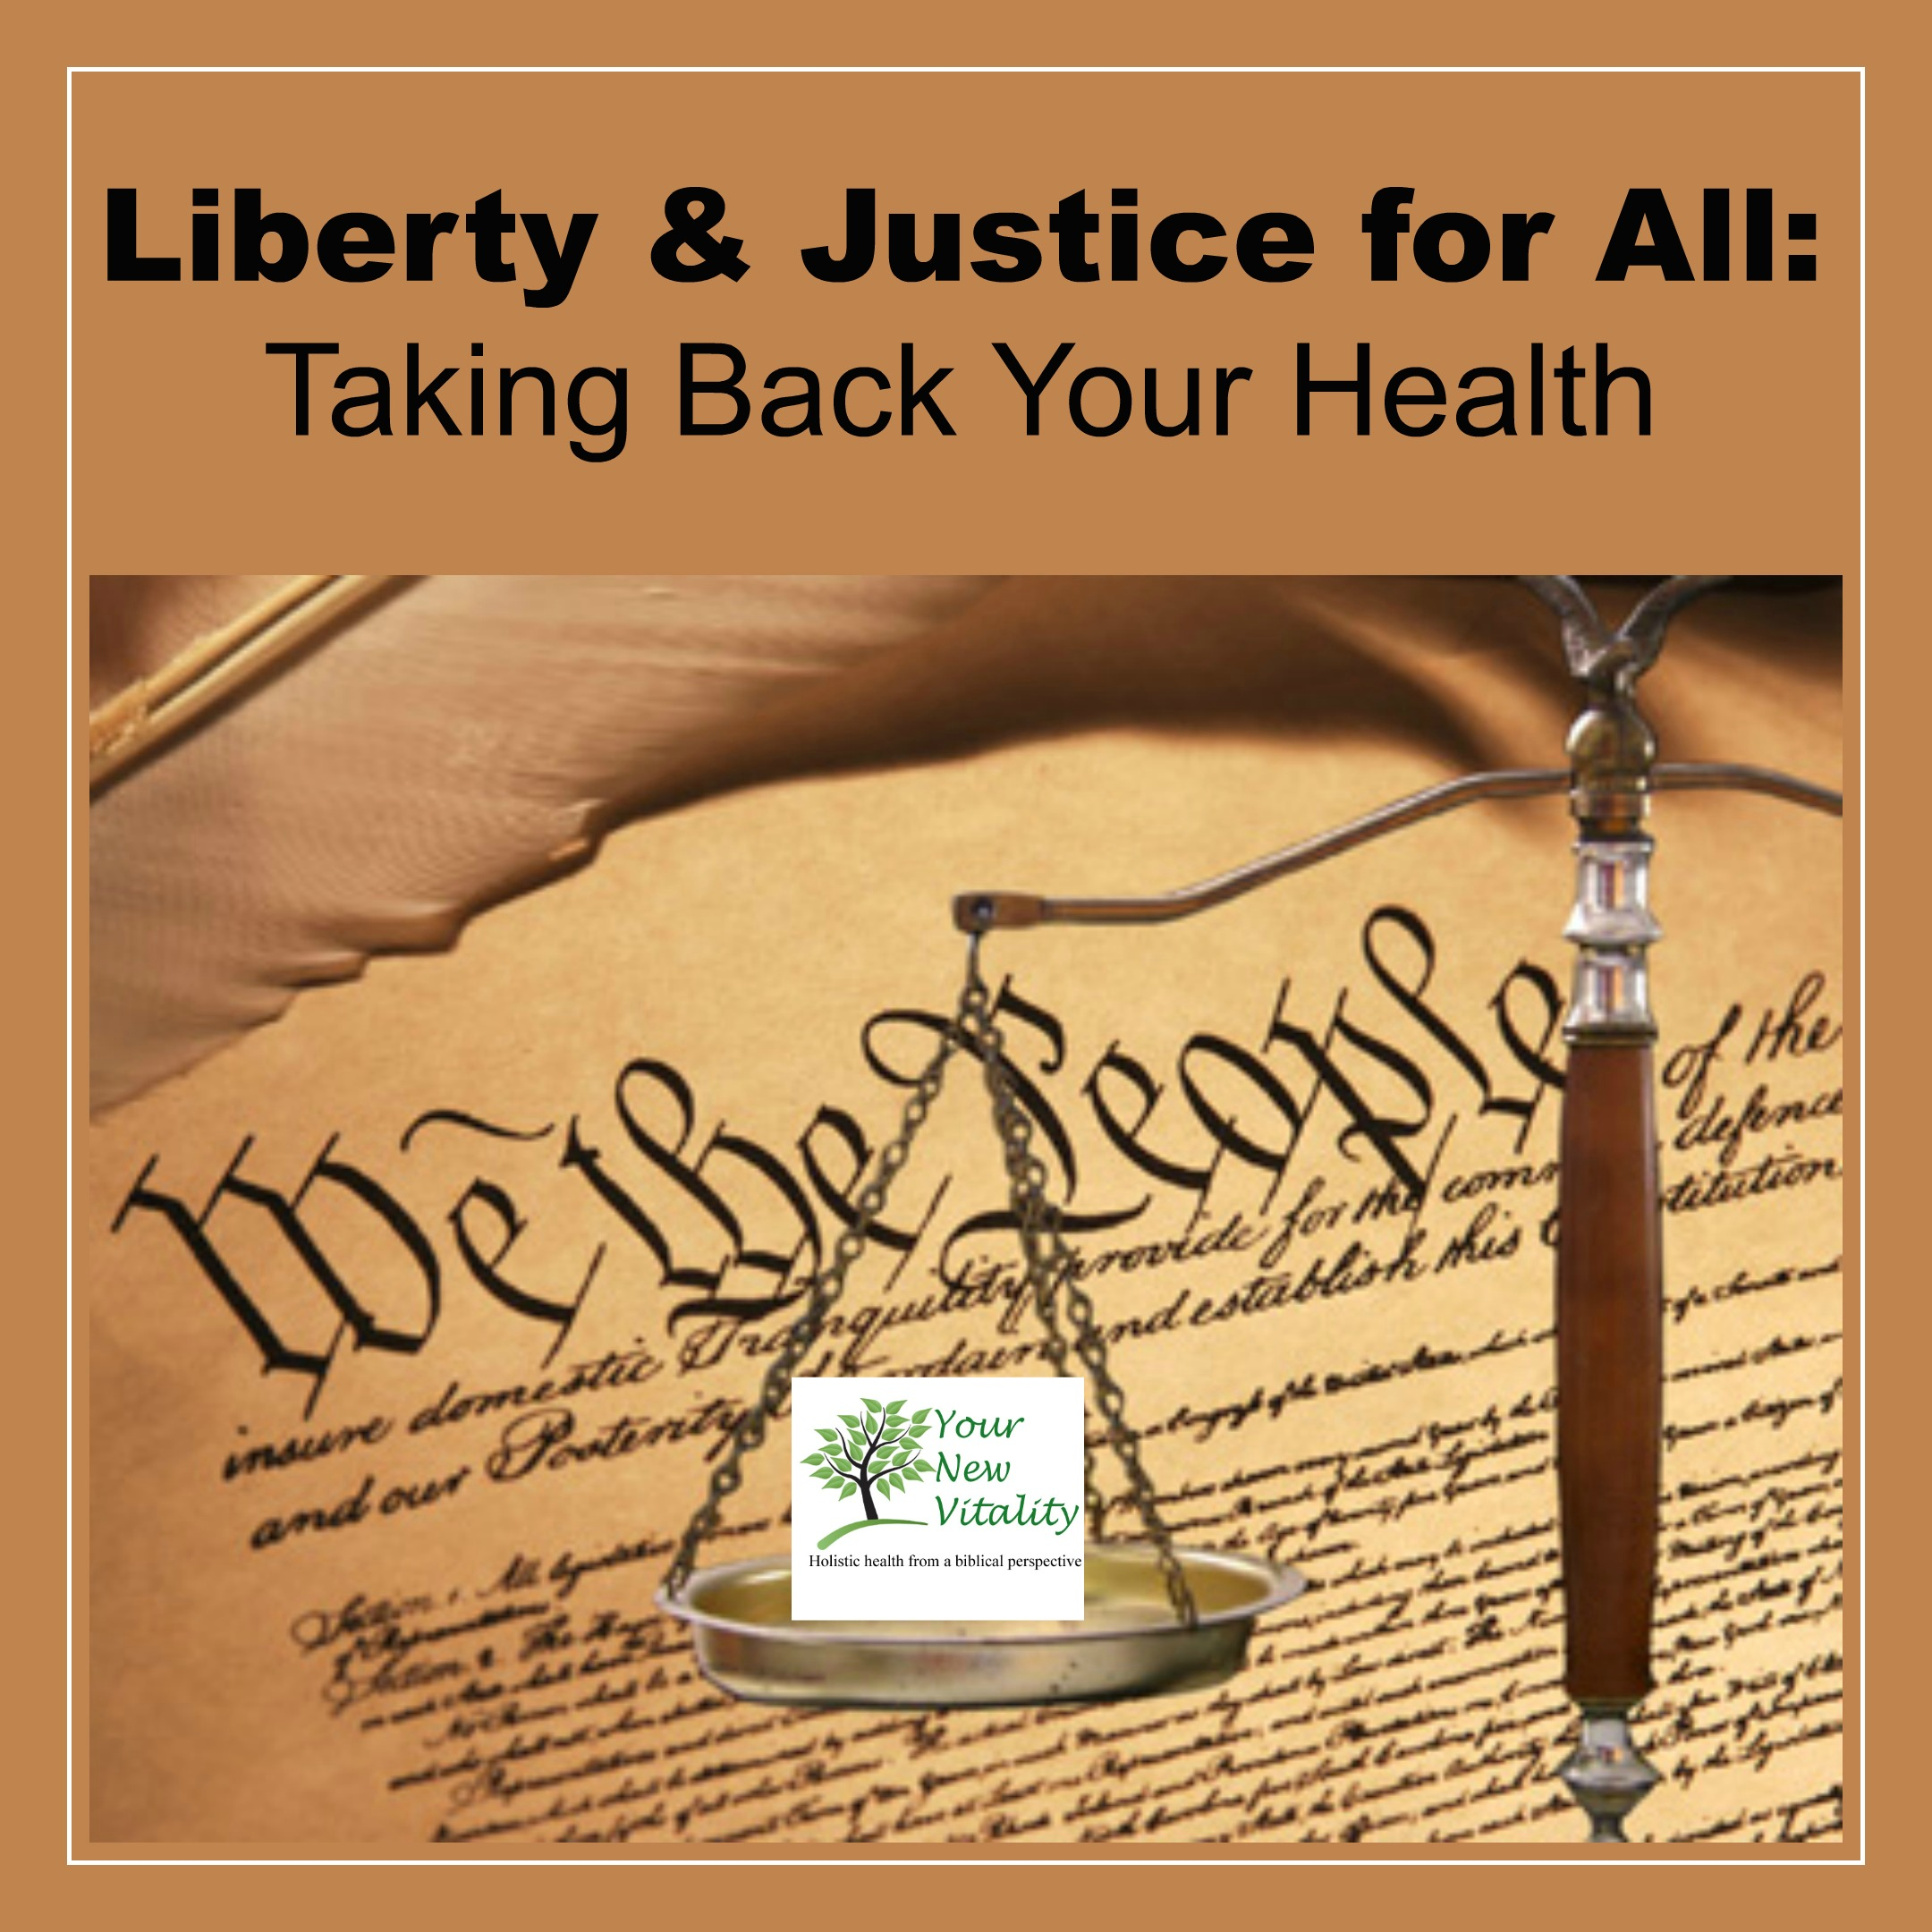 liberty justice and healthcare for all Ethical perspectives on health care reform the individual mandate is viewed as an assault on individual liberty liberty, justice and fairness.